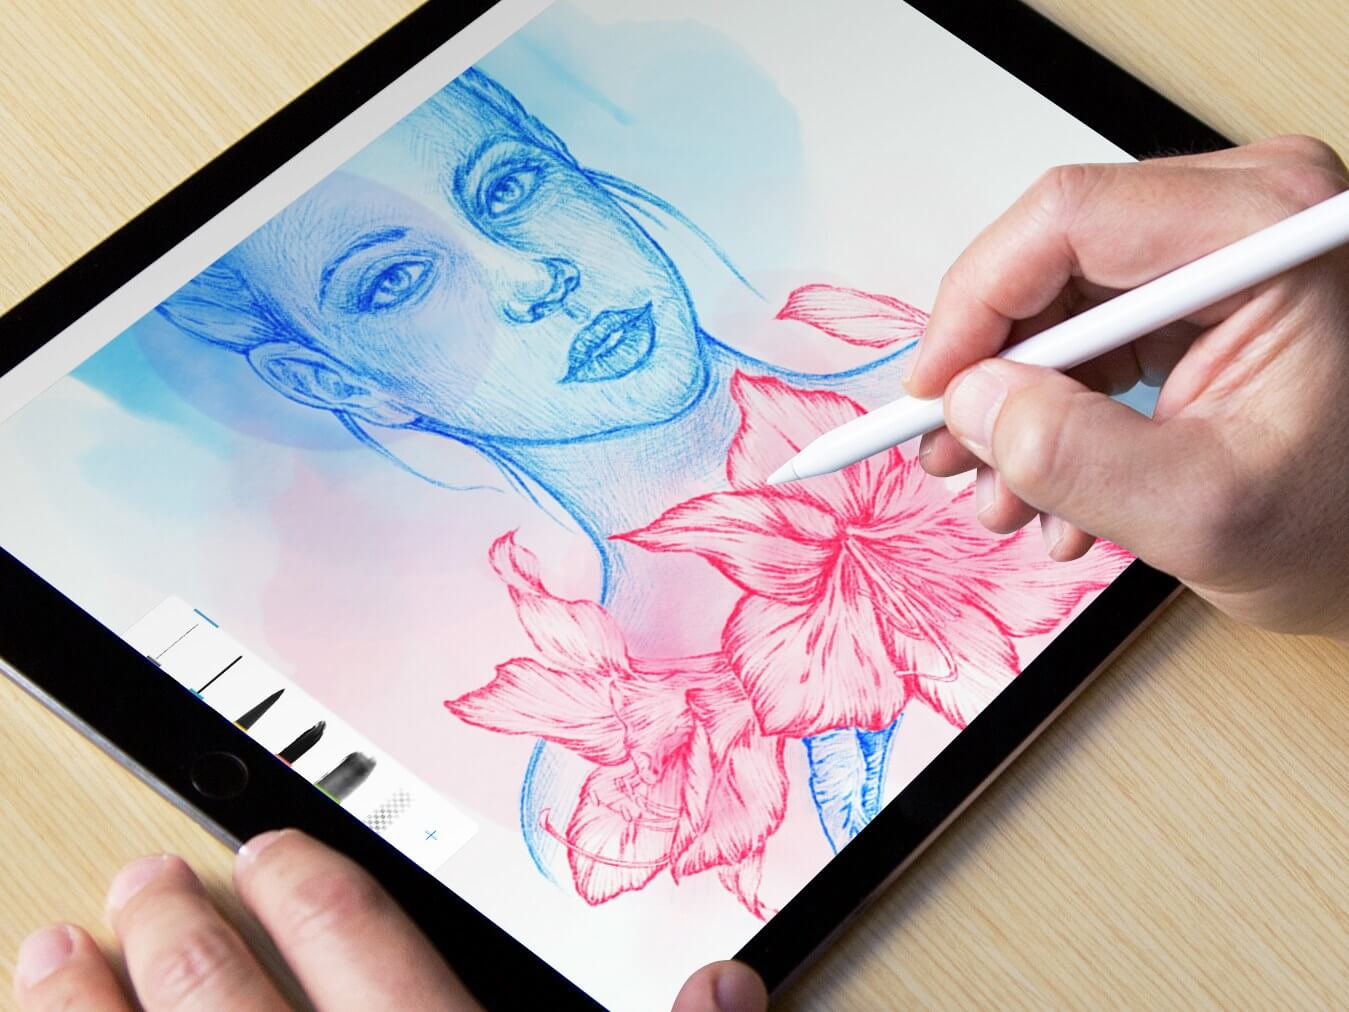 10 Best Drawing Apps For Ipad  For Sketching And Painting